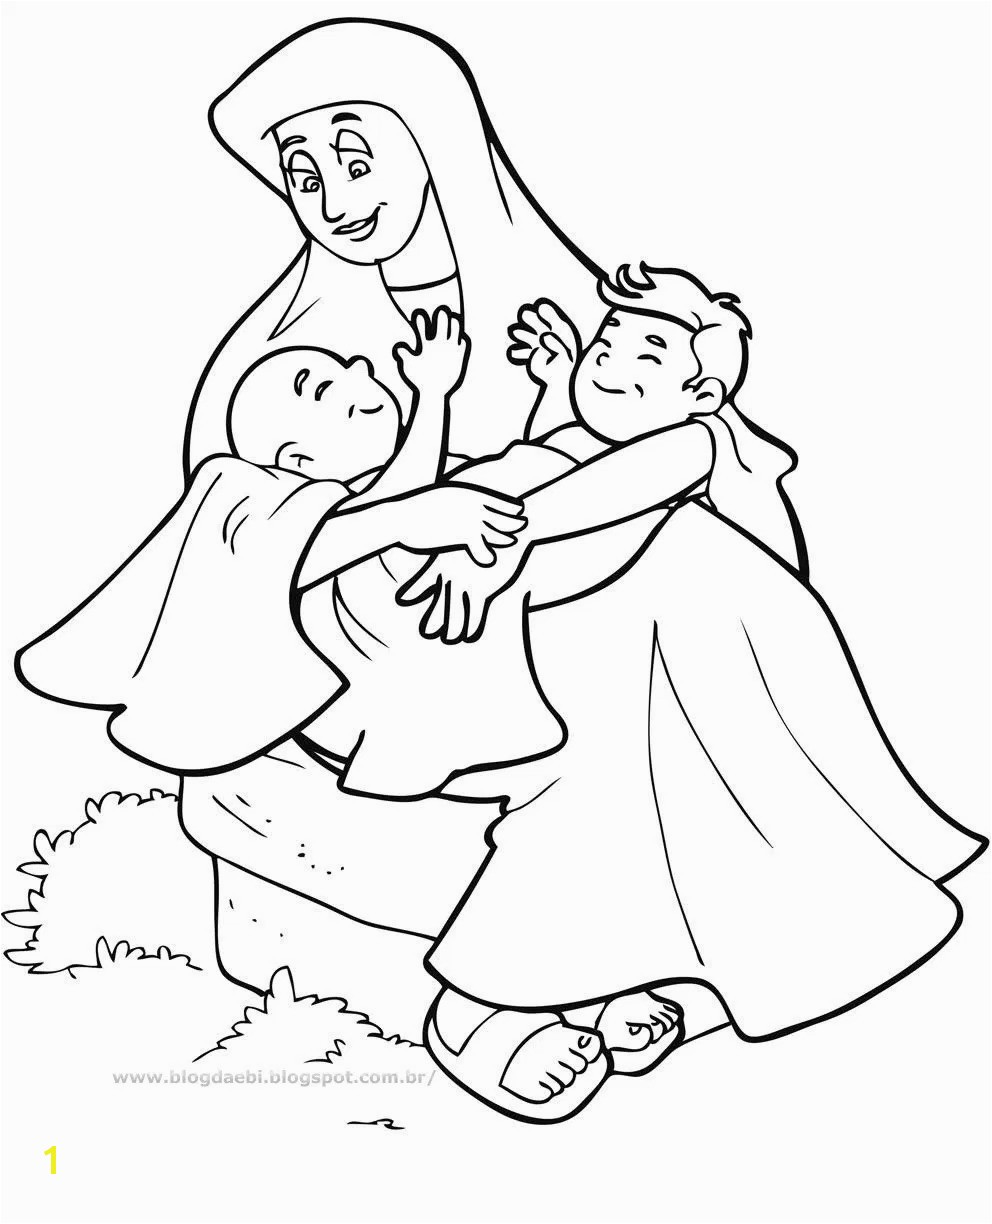 Sturdy Jacob And Esau Coloring Page Pages Barriee In Isolution